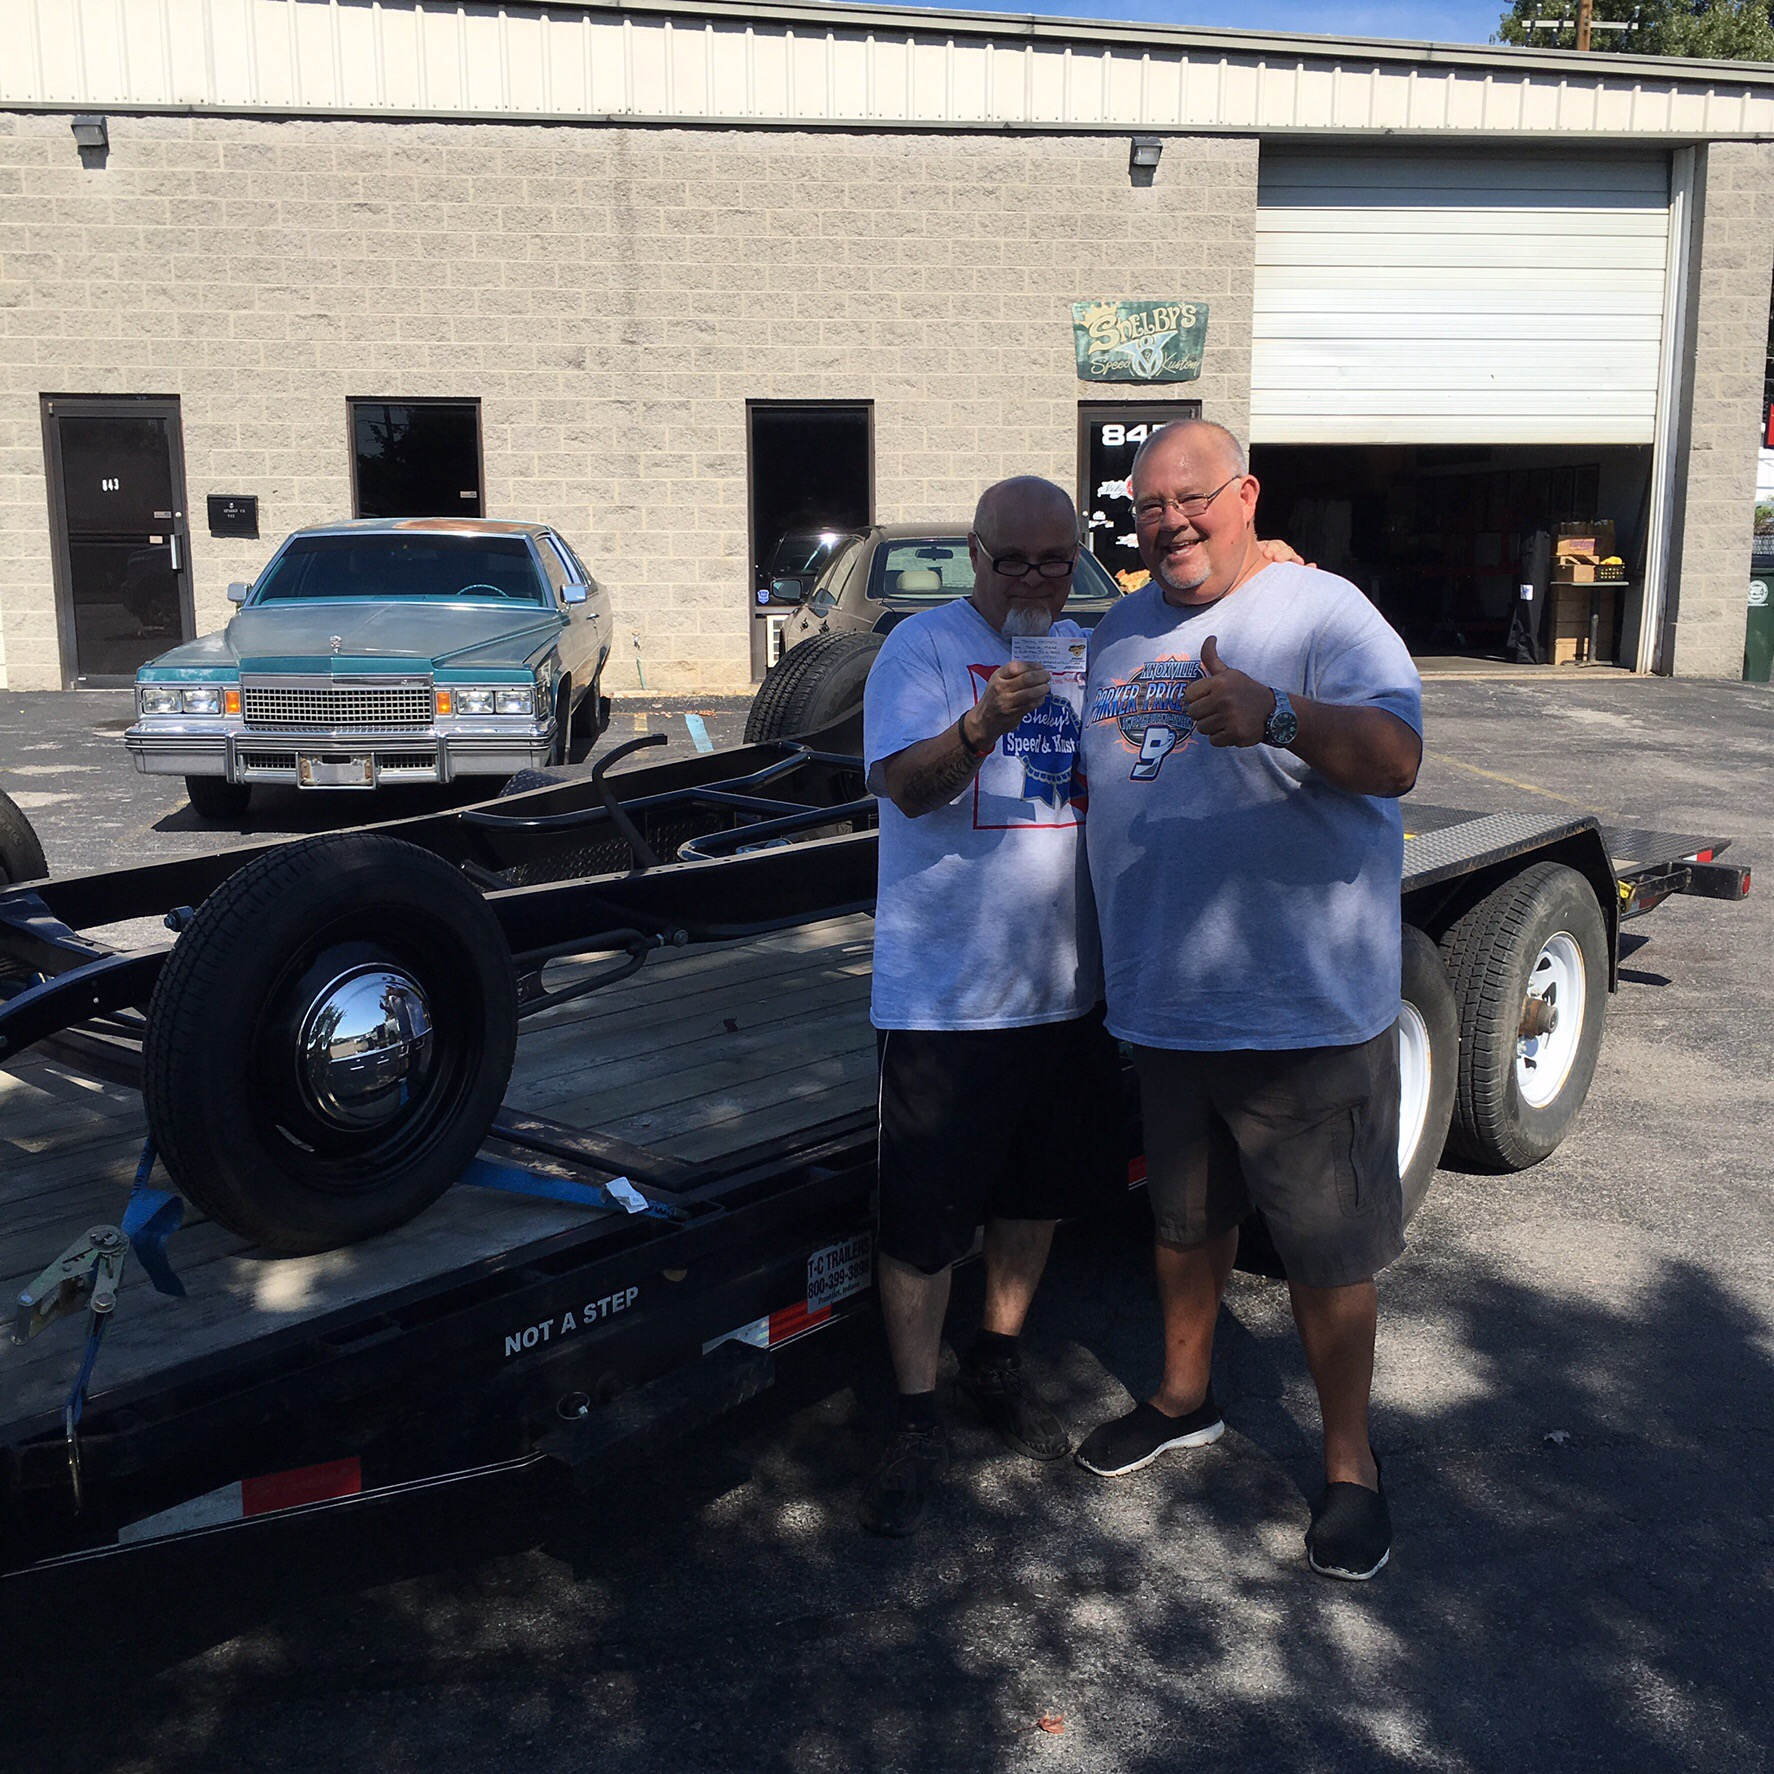 Terry Heltzel from Kokomo,Indiana is the Winner of our Pete & Jakes 32 Ford Chassis Giveaway